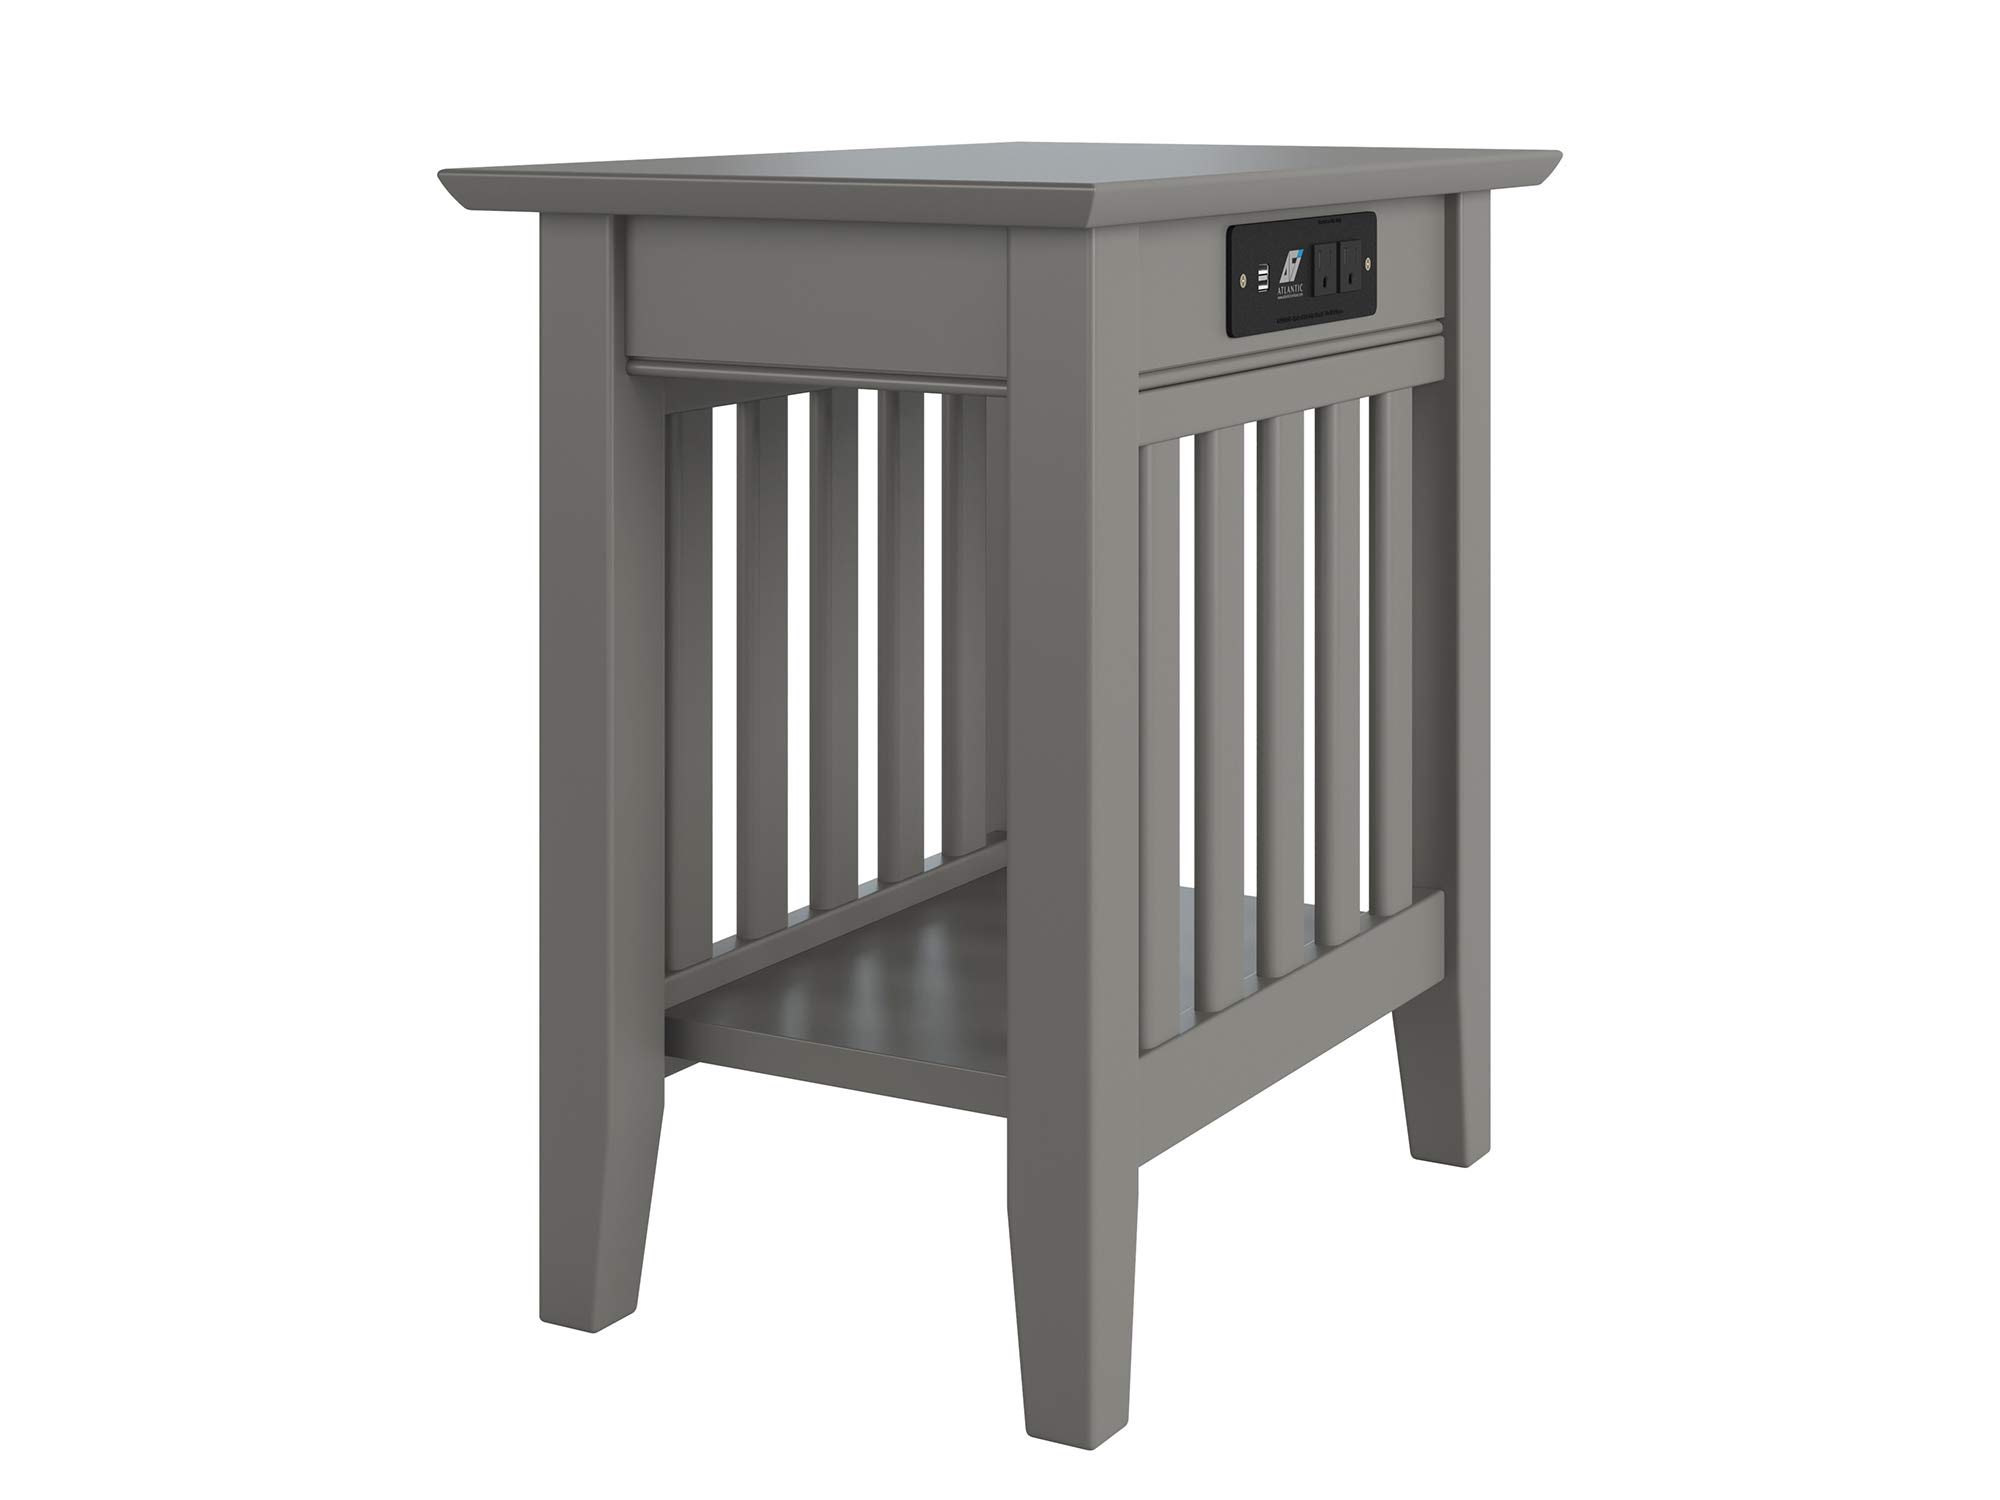 Atlantic Furniture AH13219 Mission Chair Side Table with Charging Station, Grey by Atlantic Furniture